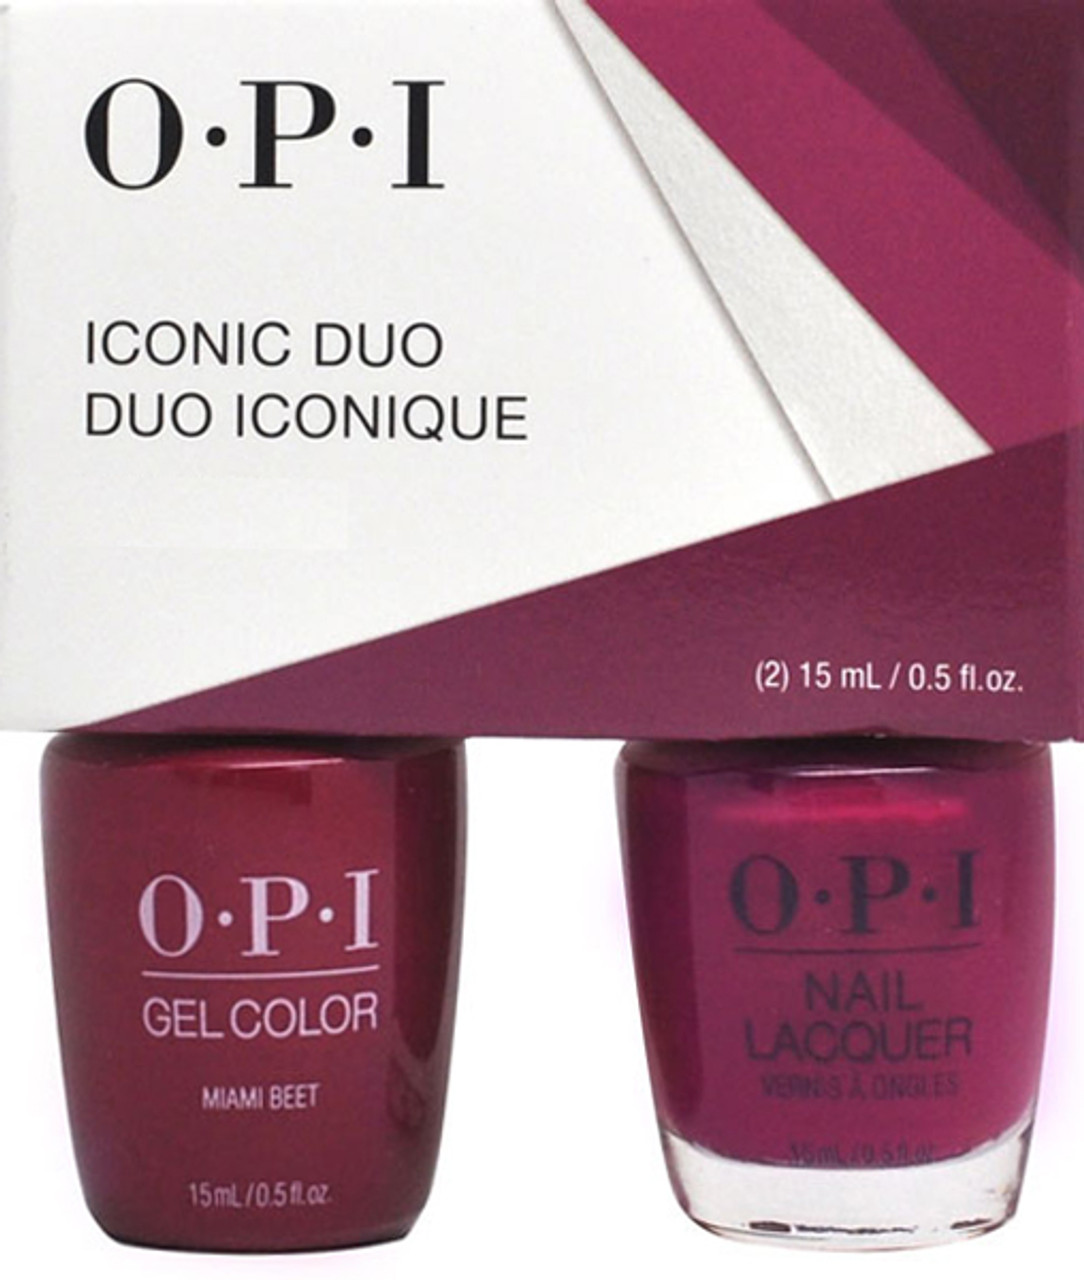 OPI DUO GelColor + Matching Nail Lacquer Summer 2021 Malibu Collection - Open Stock